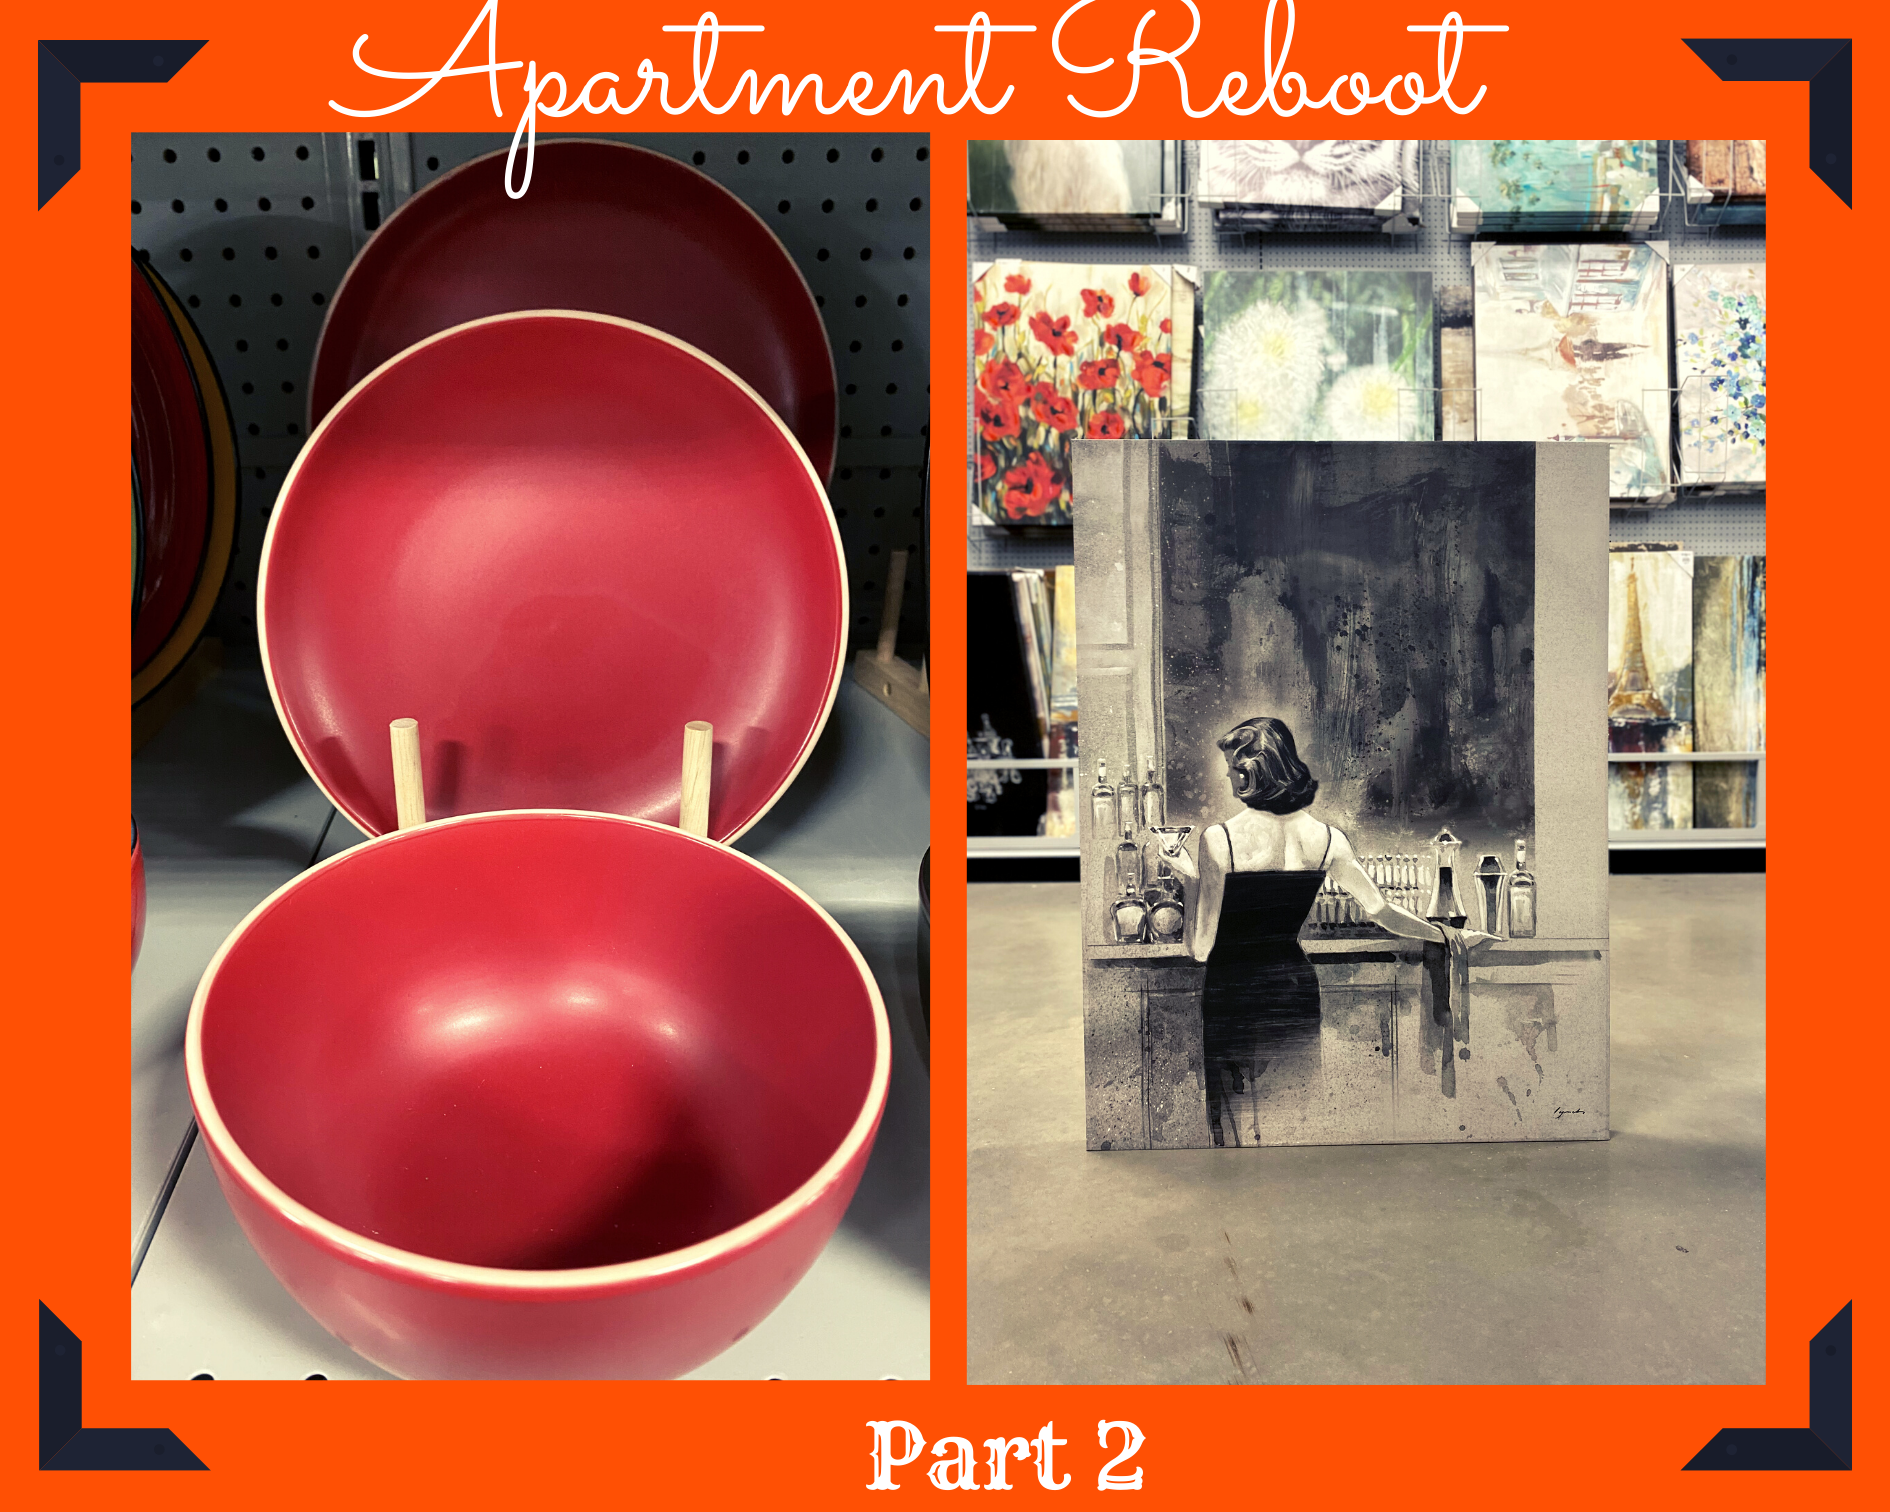 What I Did Find: Apartment Reboot Part 2!